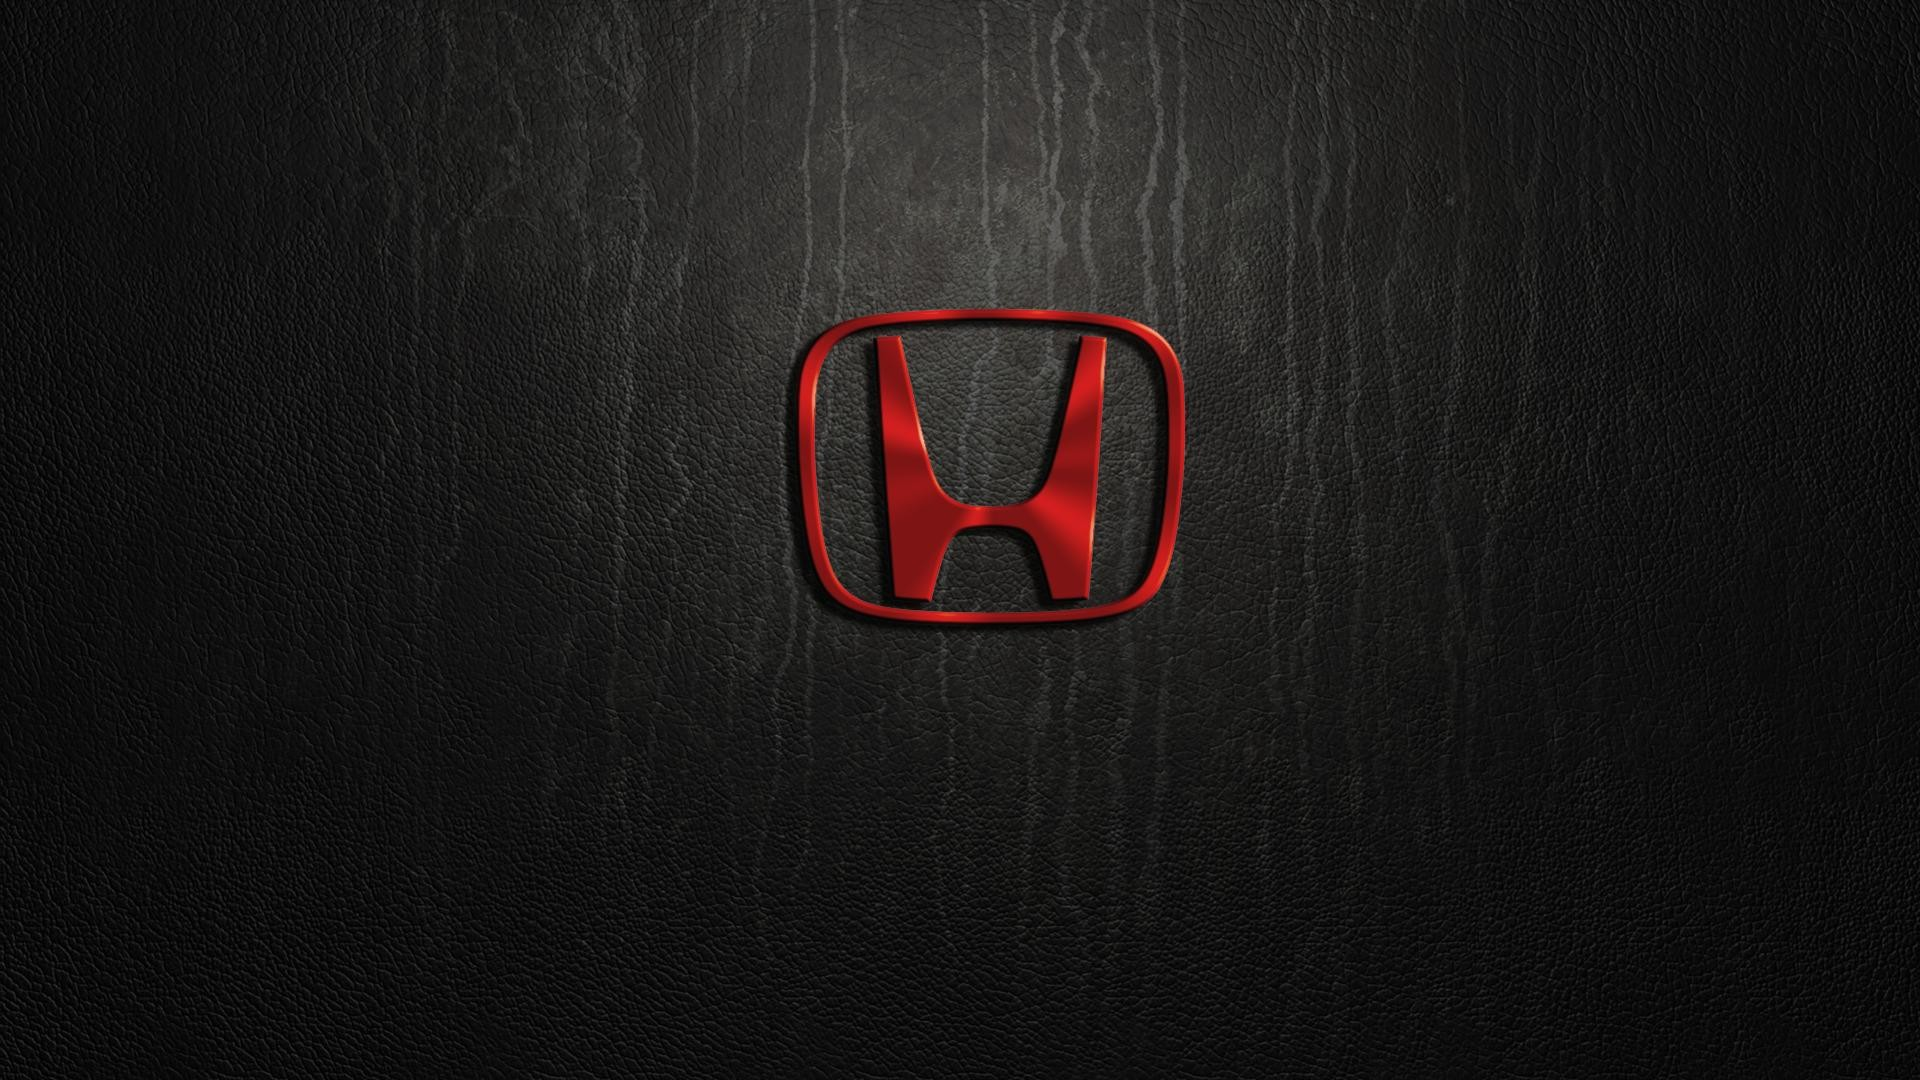 civic wallpaper honda symbol - photo #16